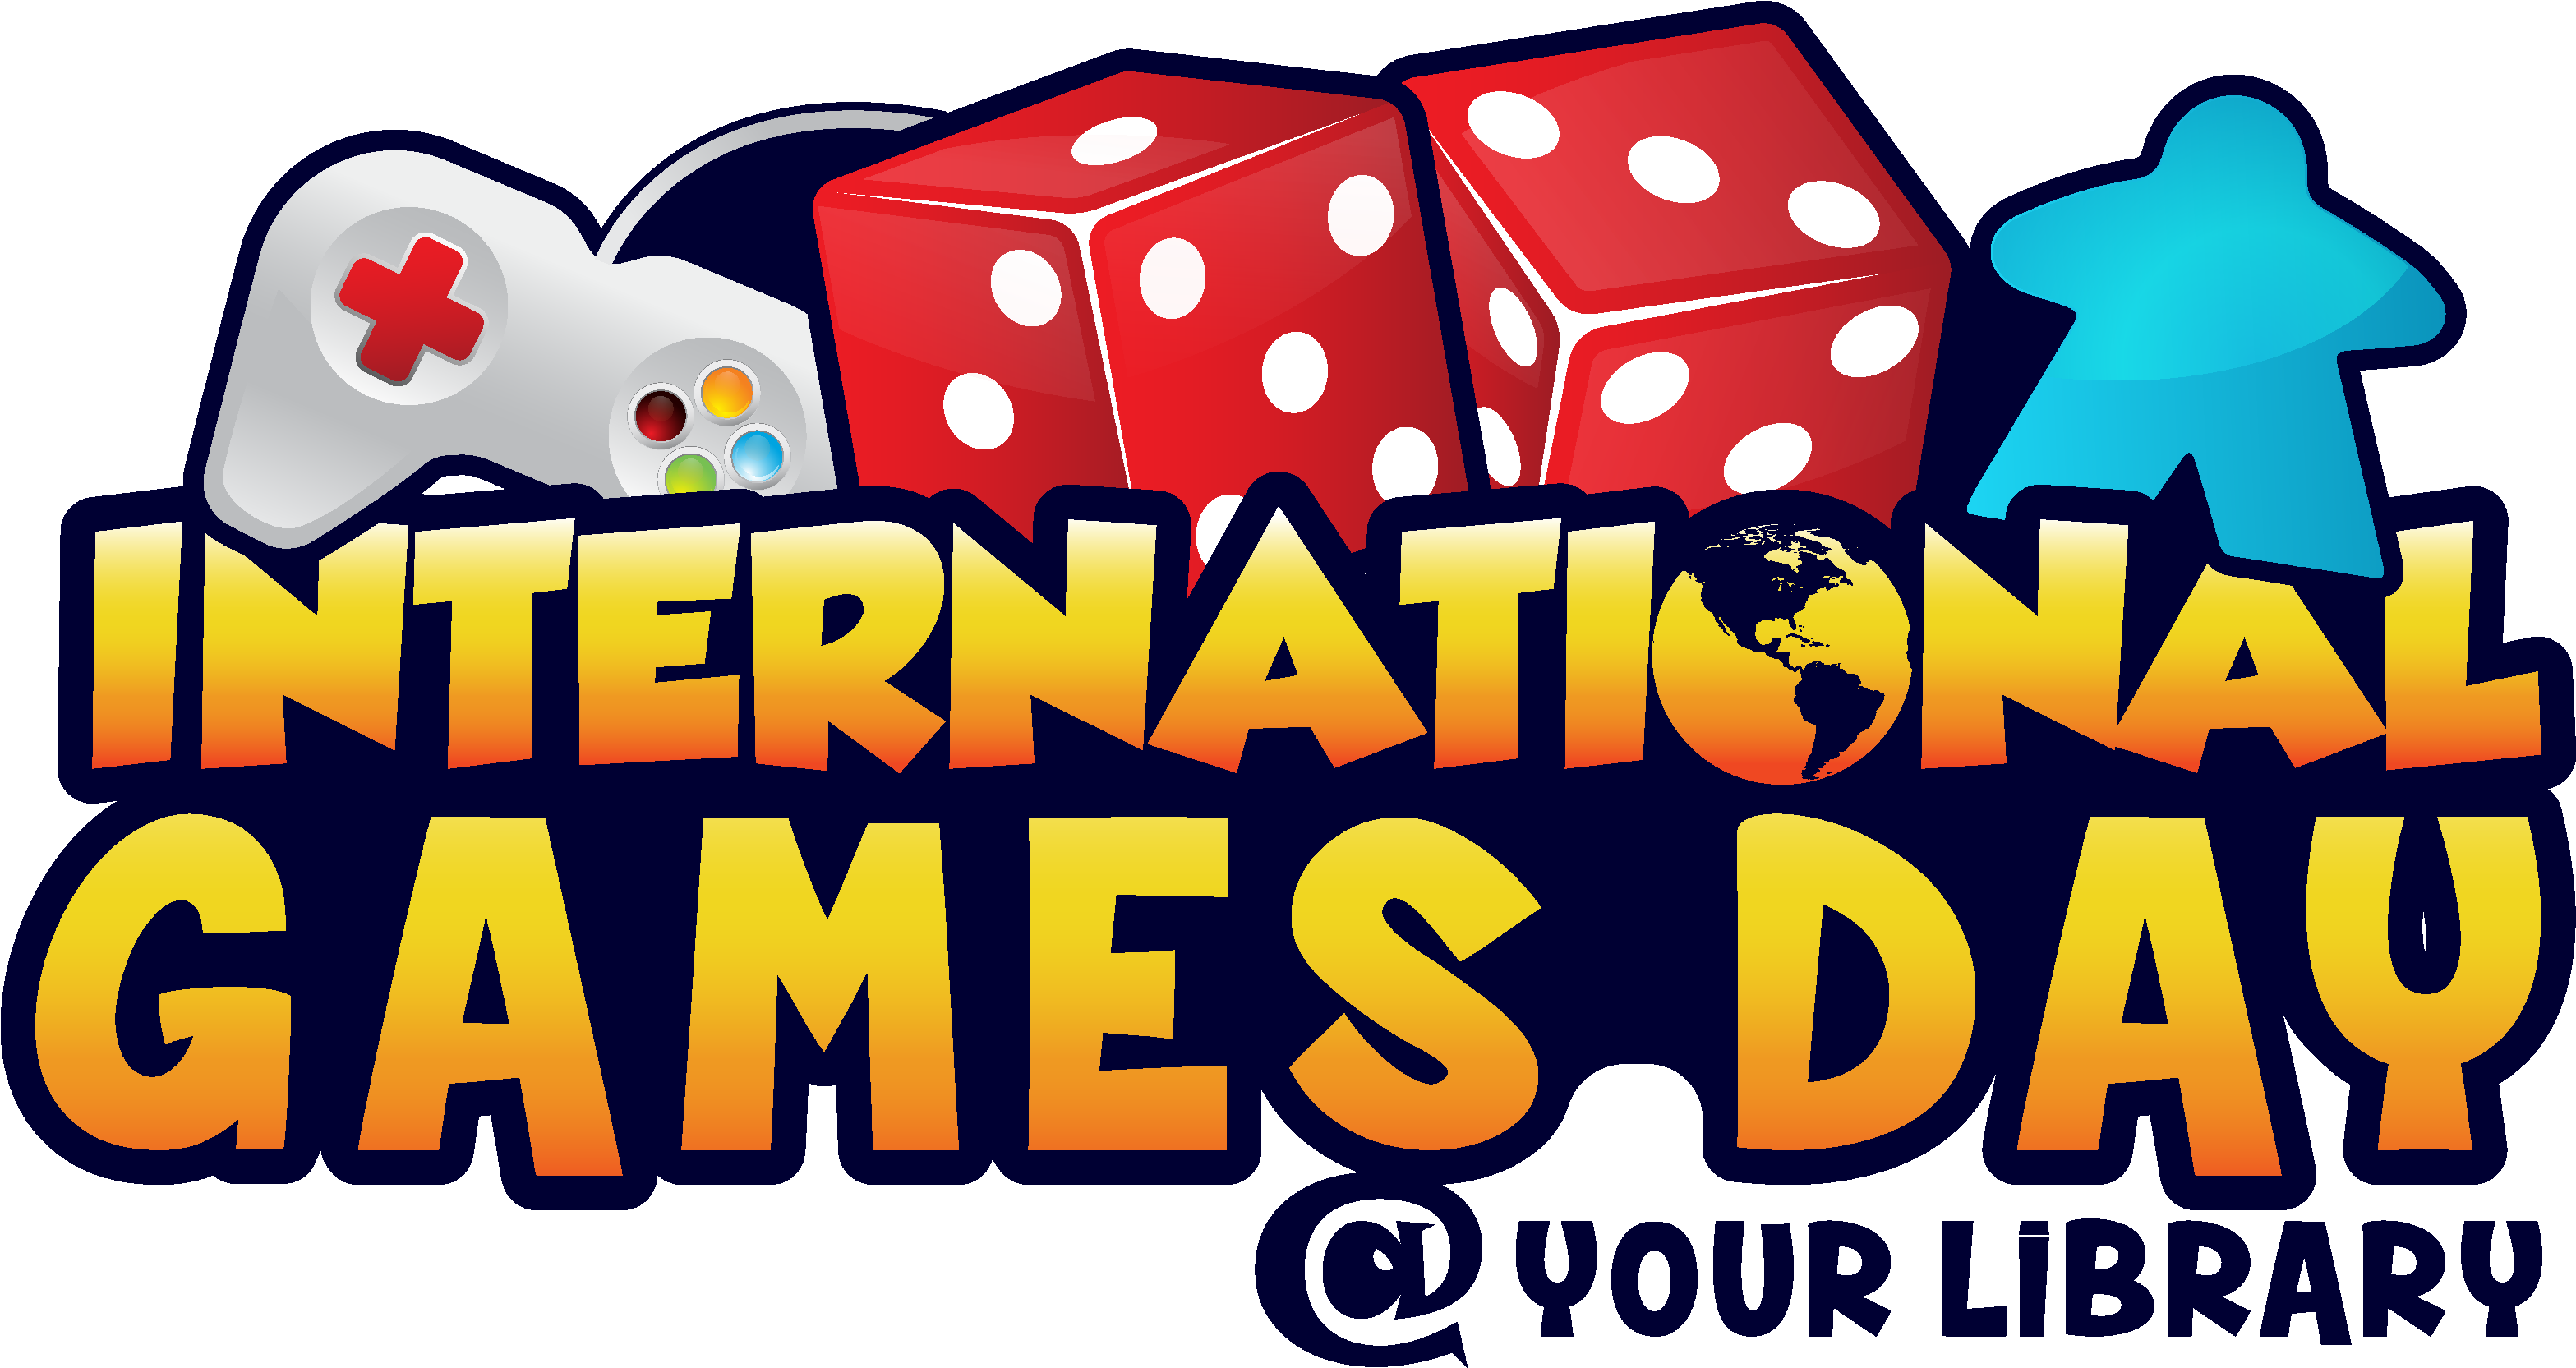 Gaming clipart game piece. Number games day transparent